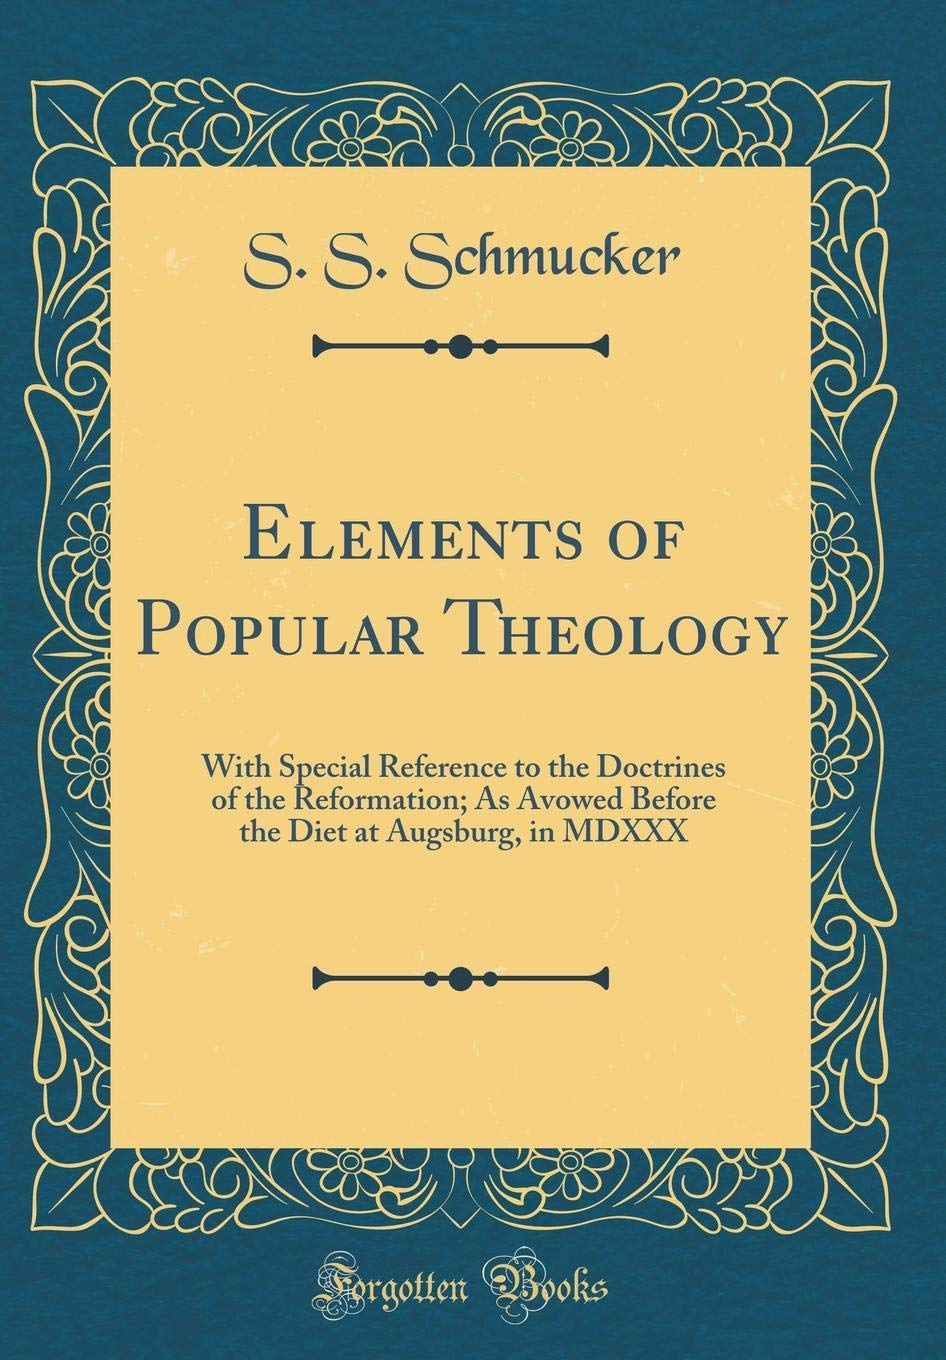 Elements of Popular Theology: With Special Reference to the Doctrines of the Reformation; As Avowed Before the Diet at Augsburg, in MDXXX (Classic Reprint) pdf